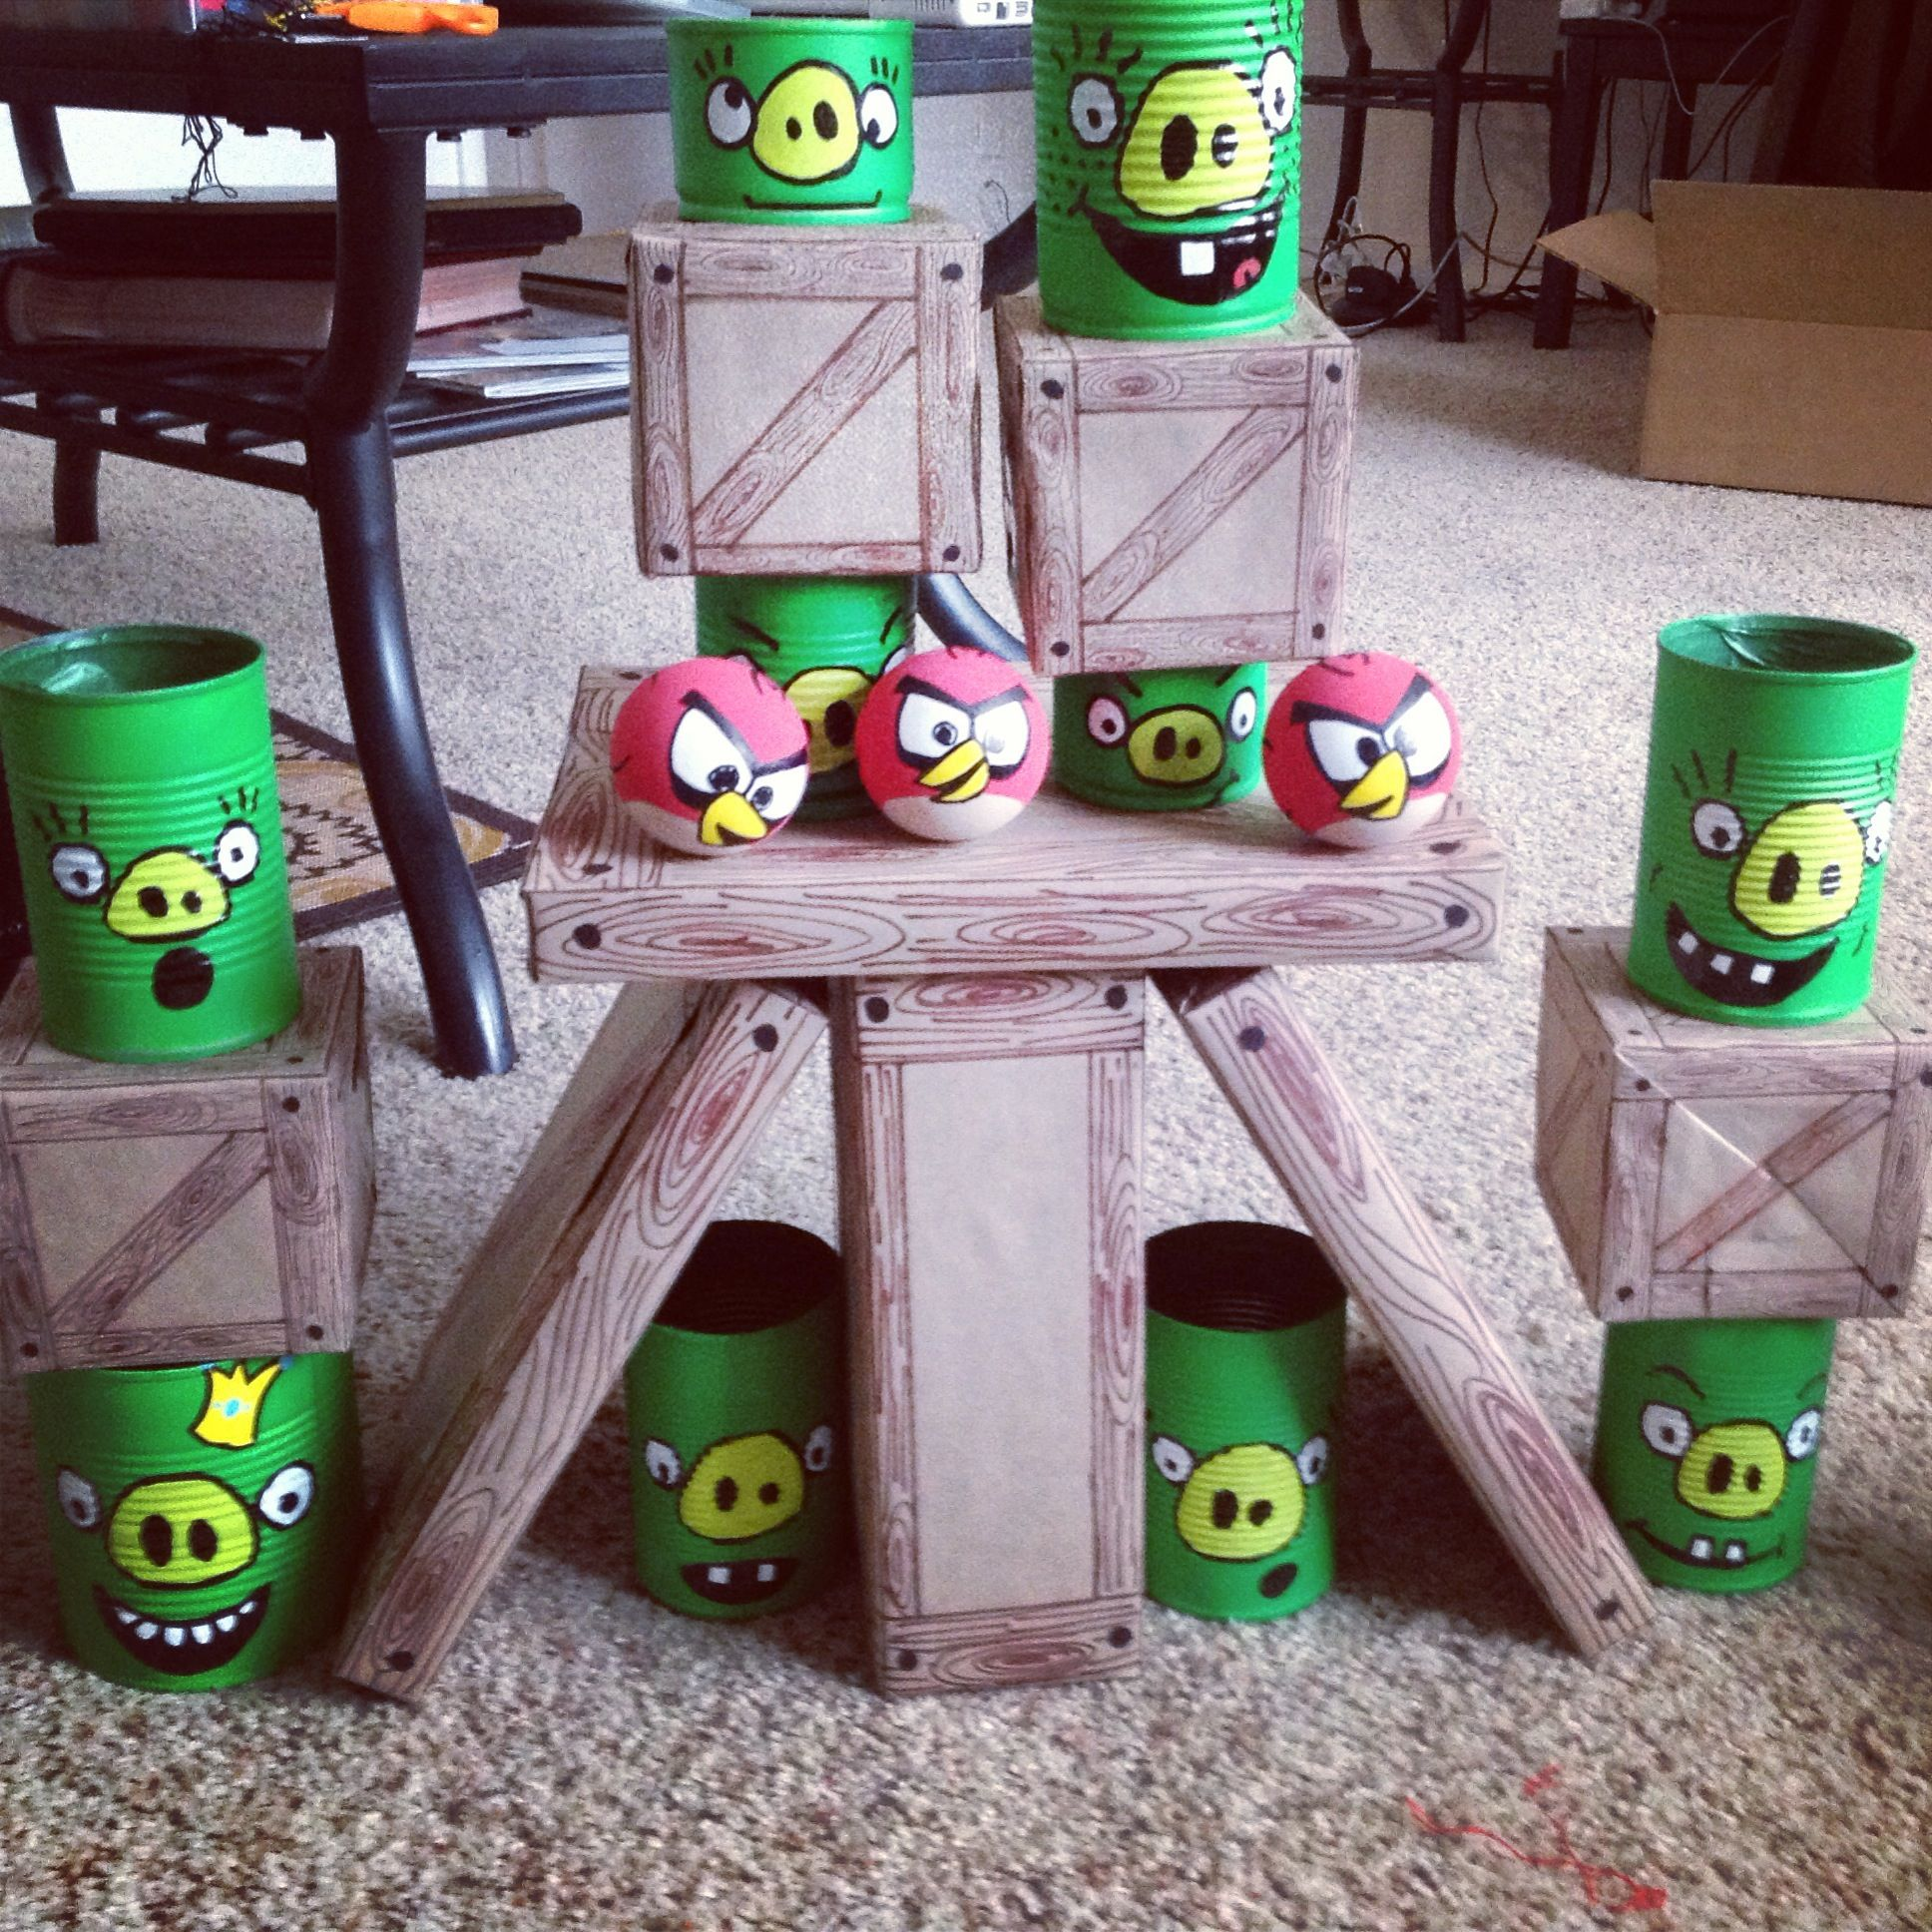 Home Made Angry Birds Game. #angrybirds